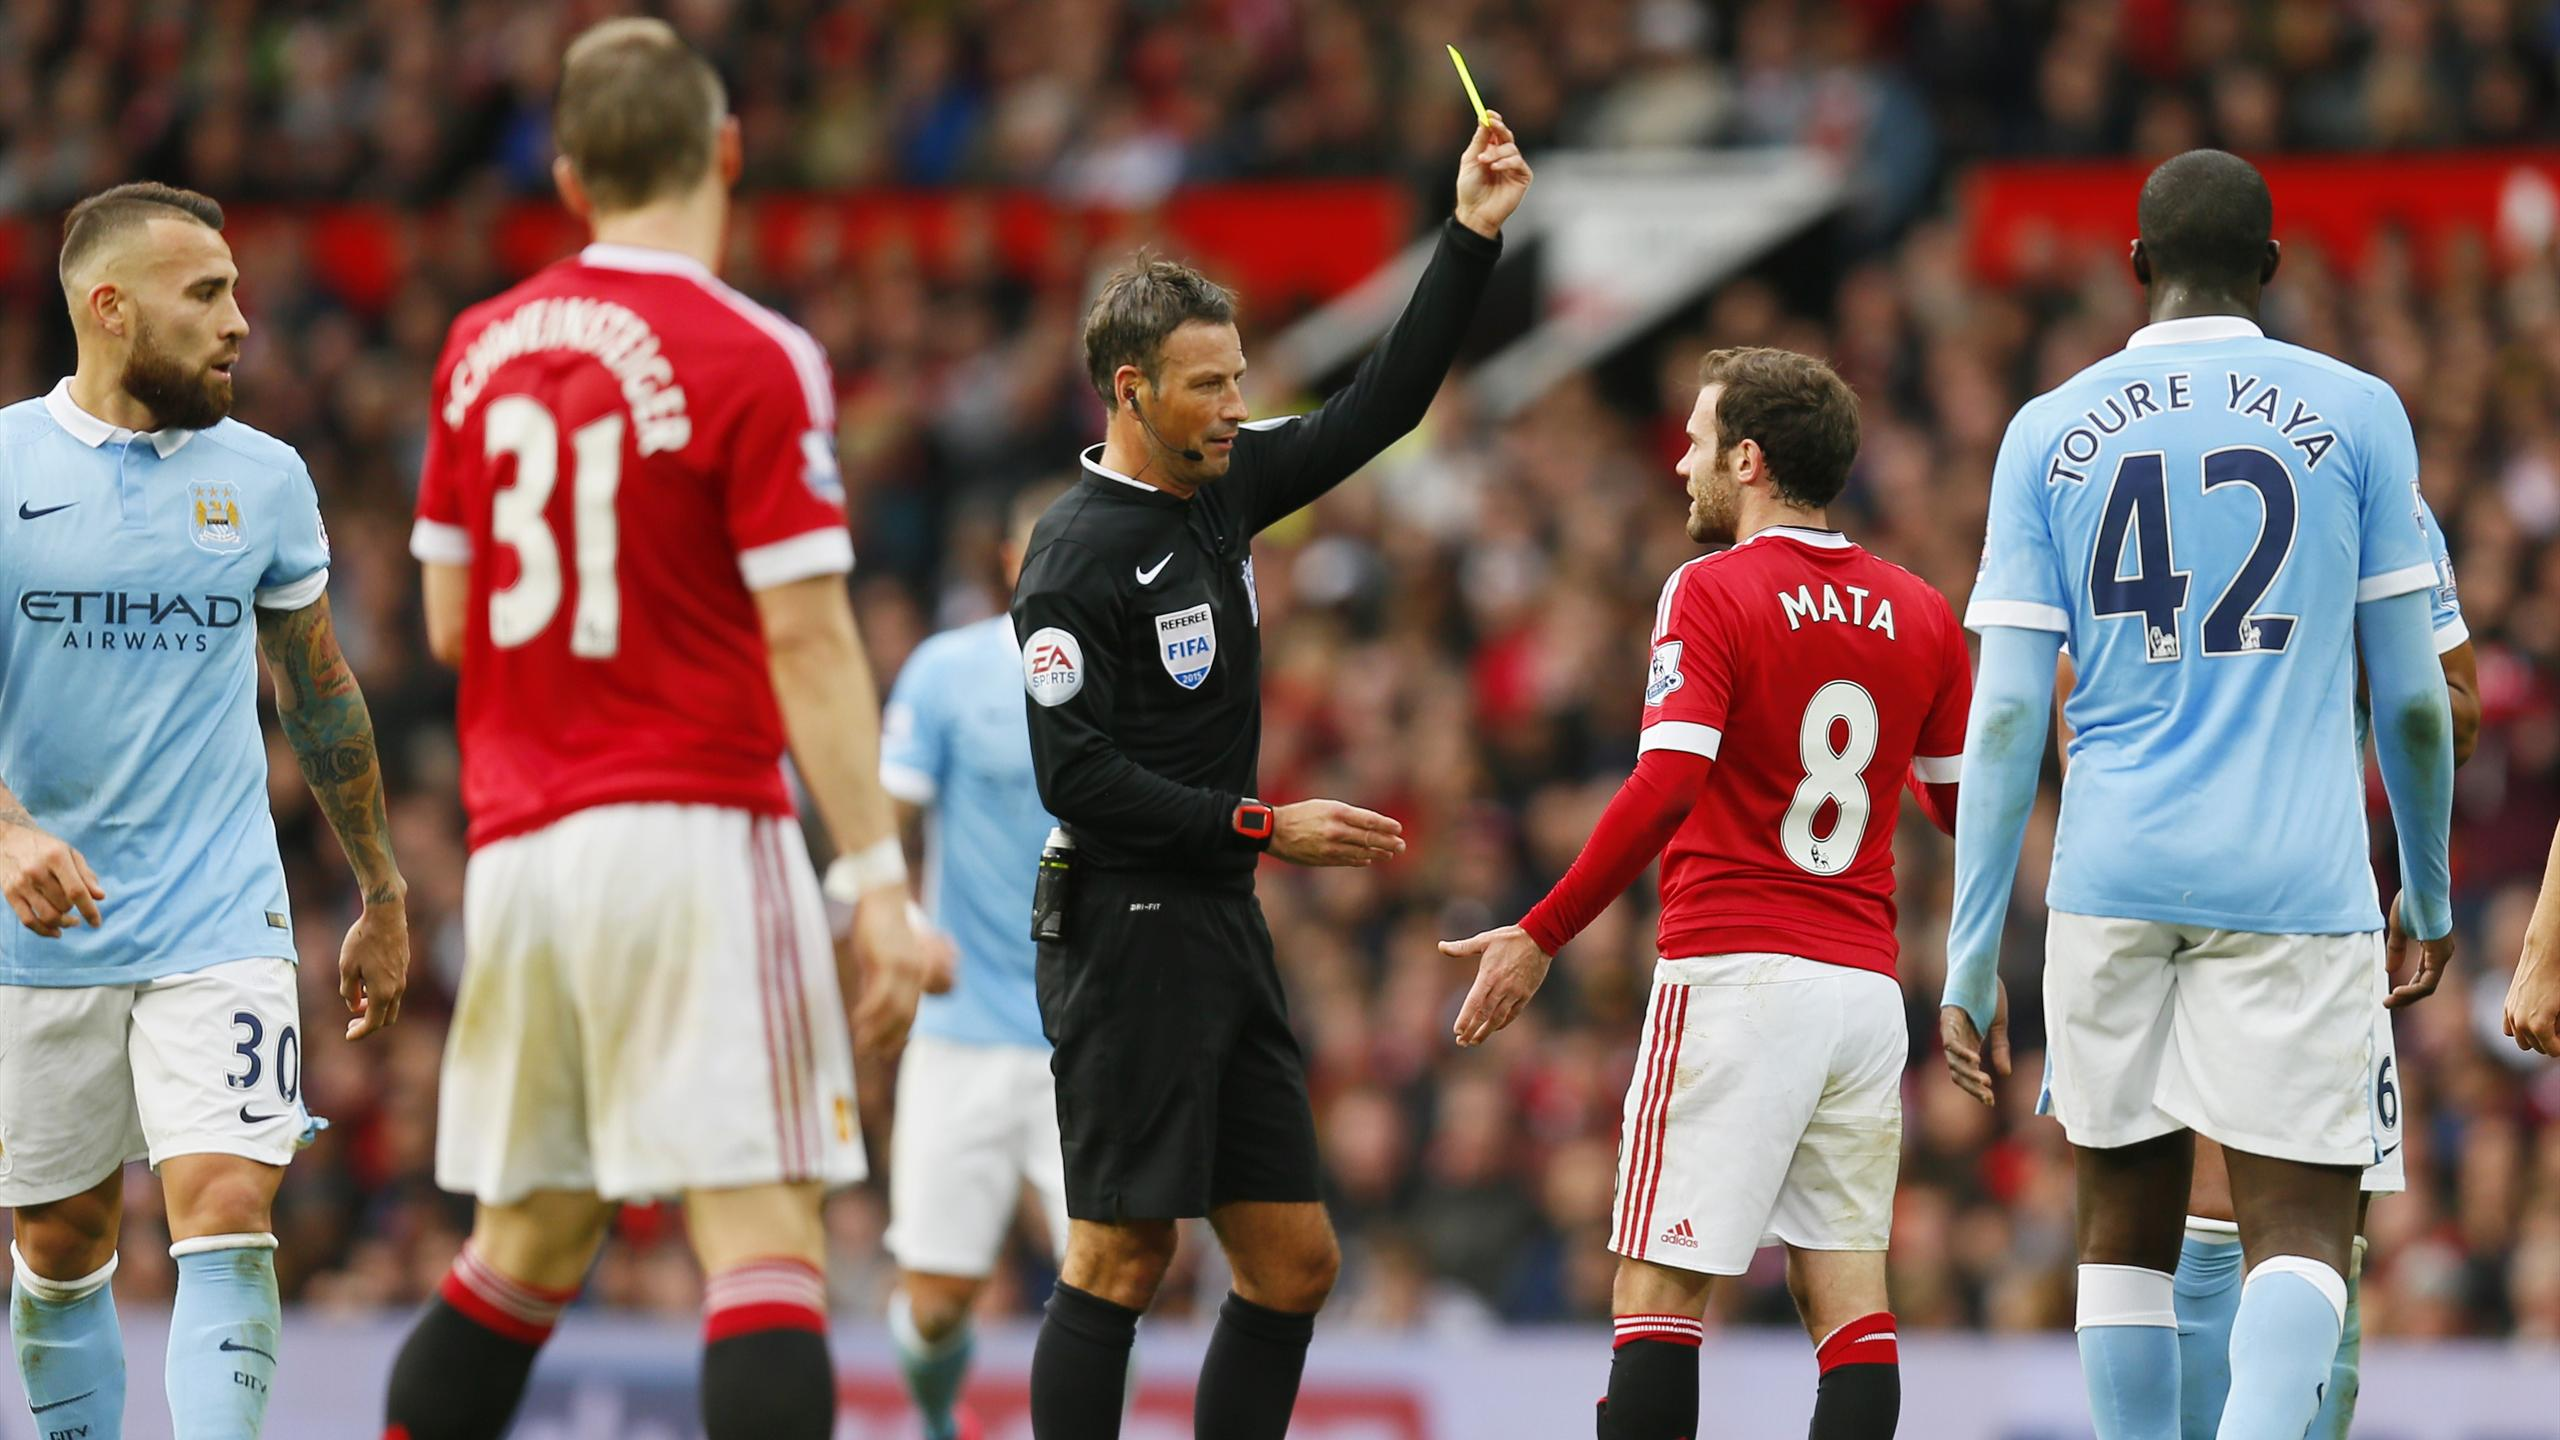 Manchester United's Juan Mata is booked by referee Mark Clattenburg